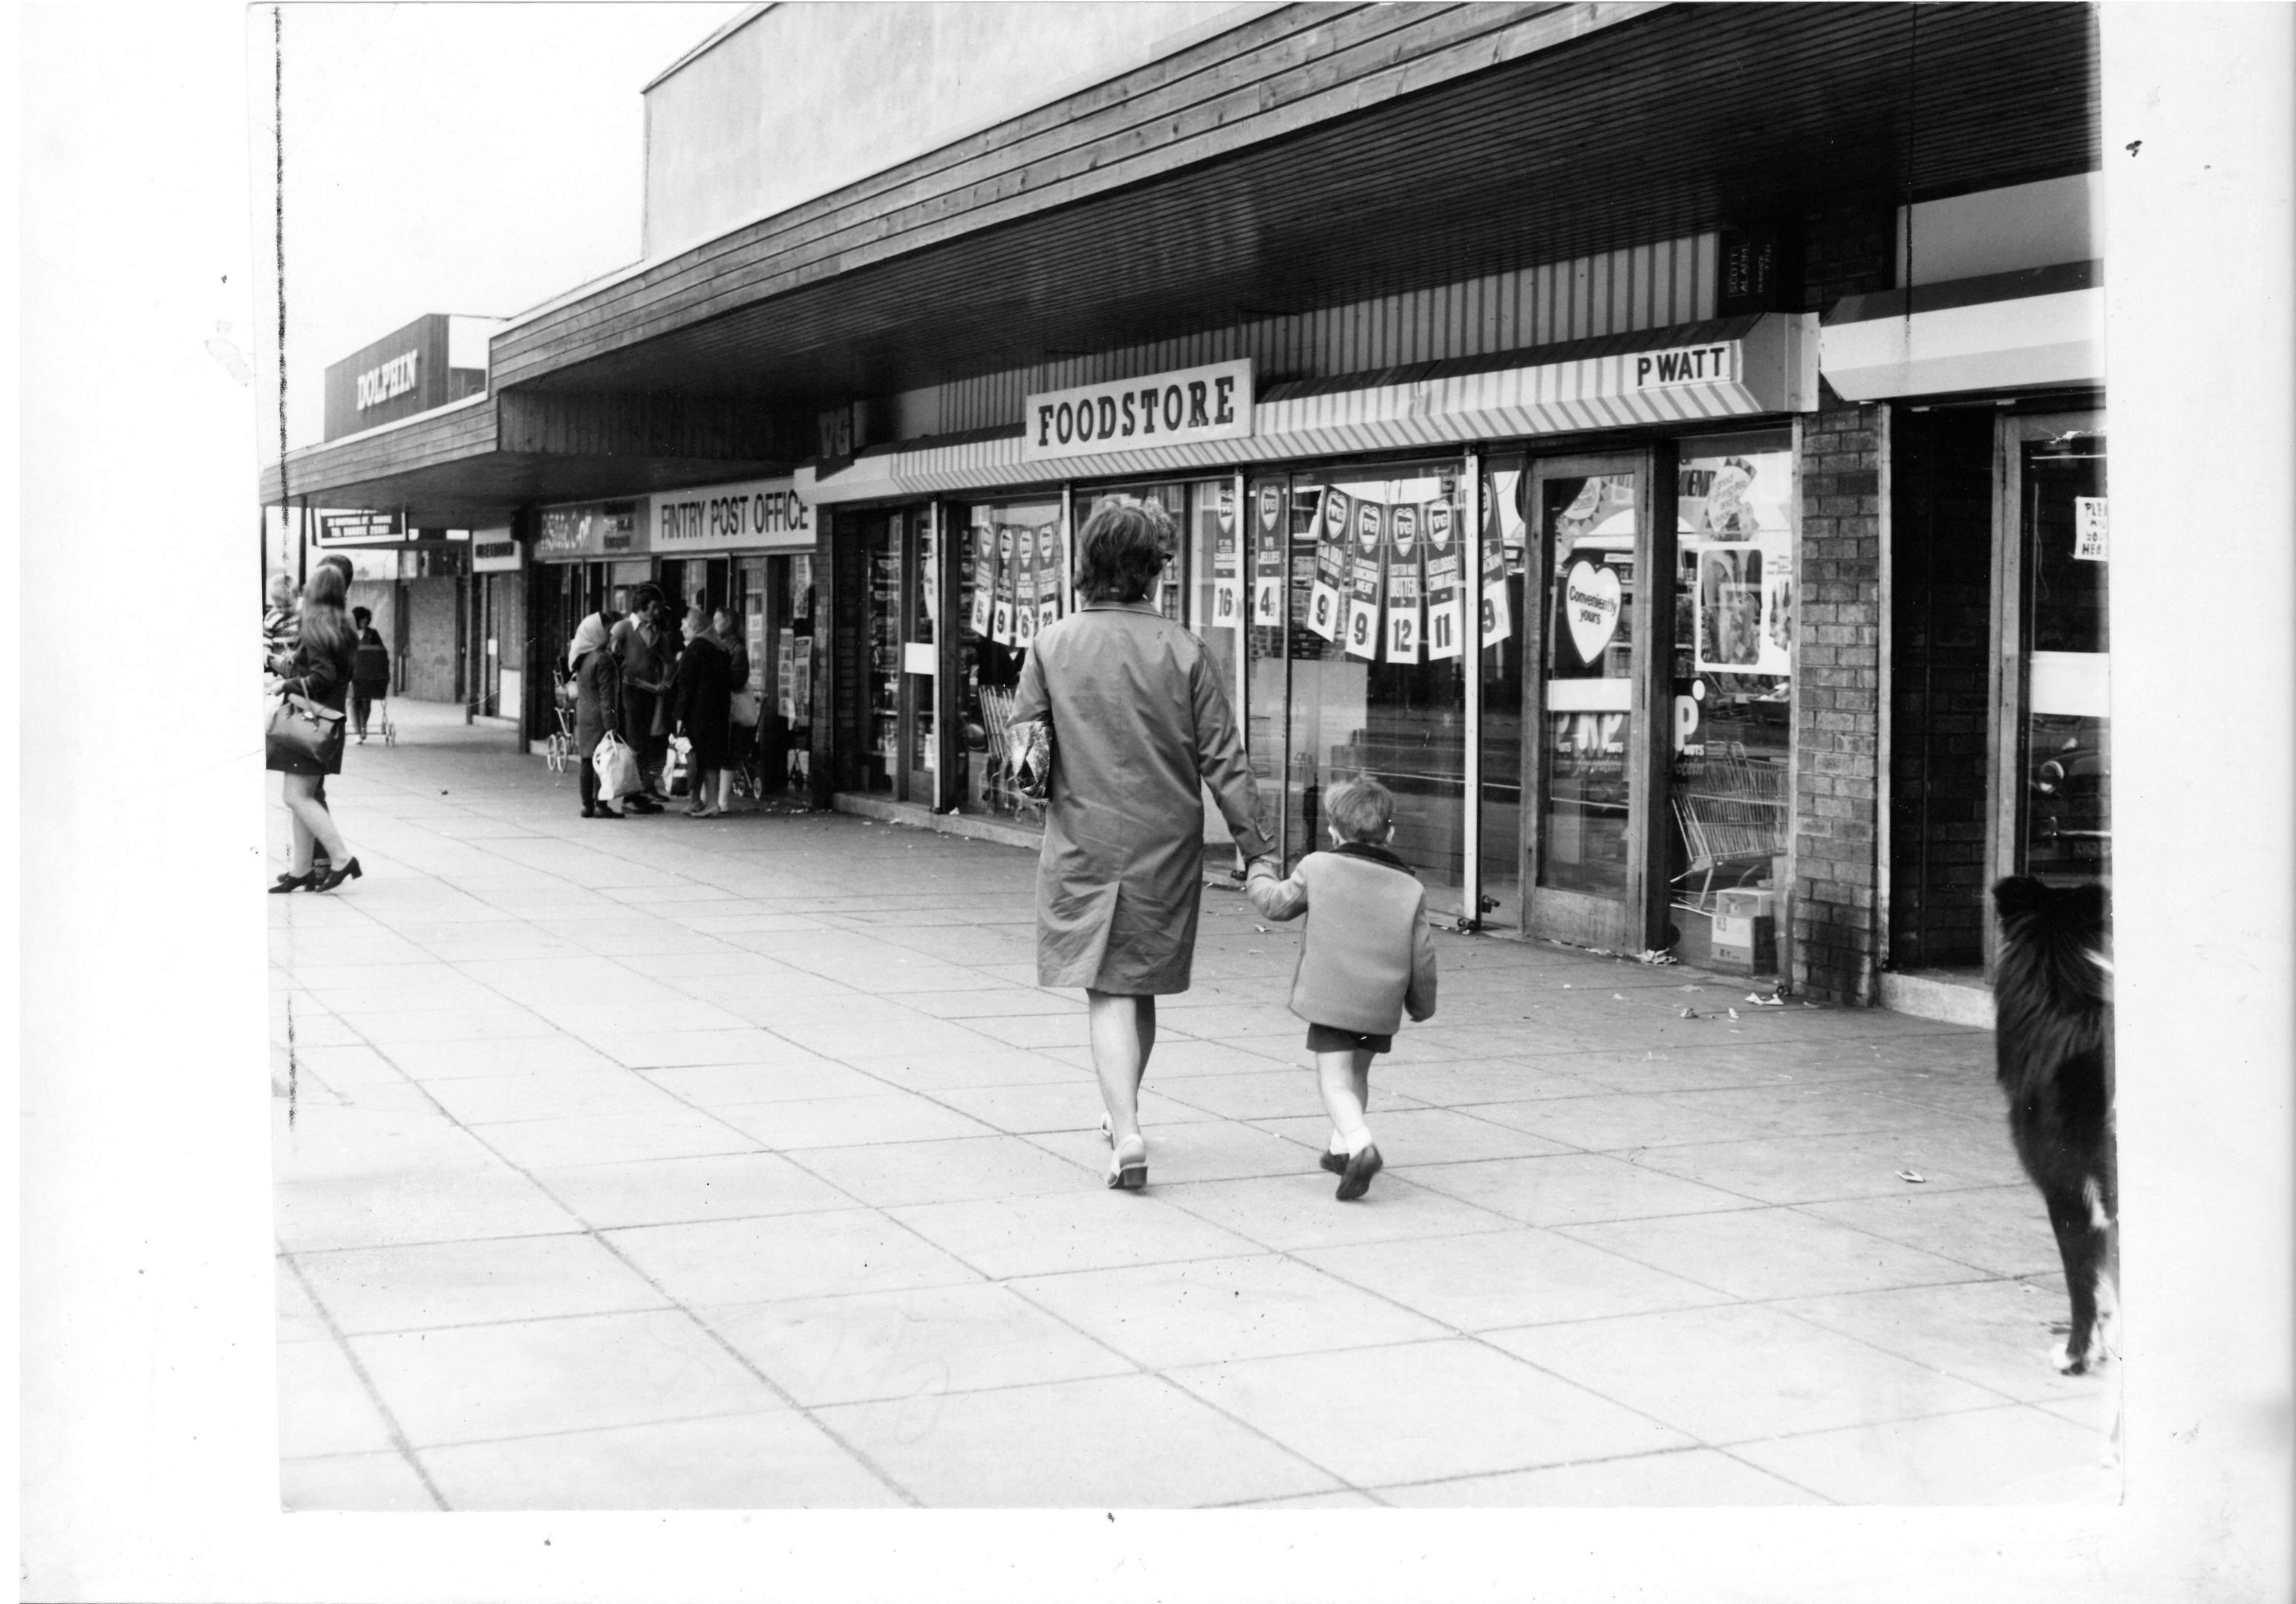 Fintry Road, pictured in 1972, is the address written on the box of film.